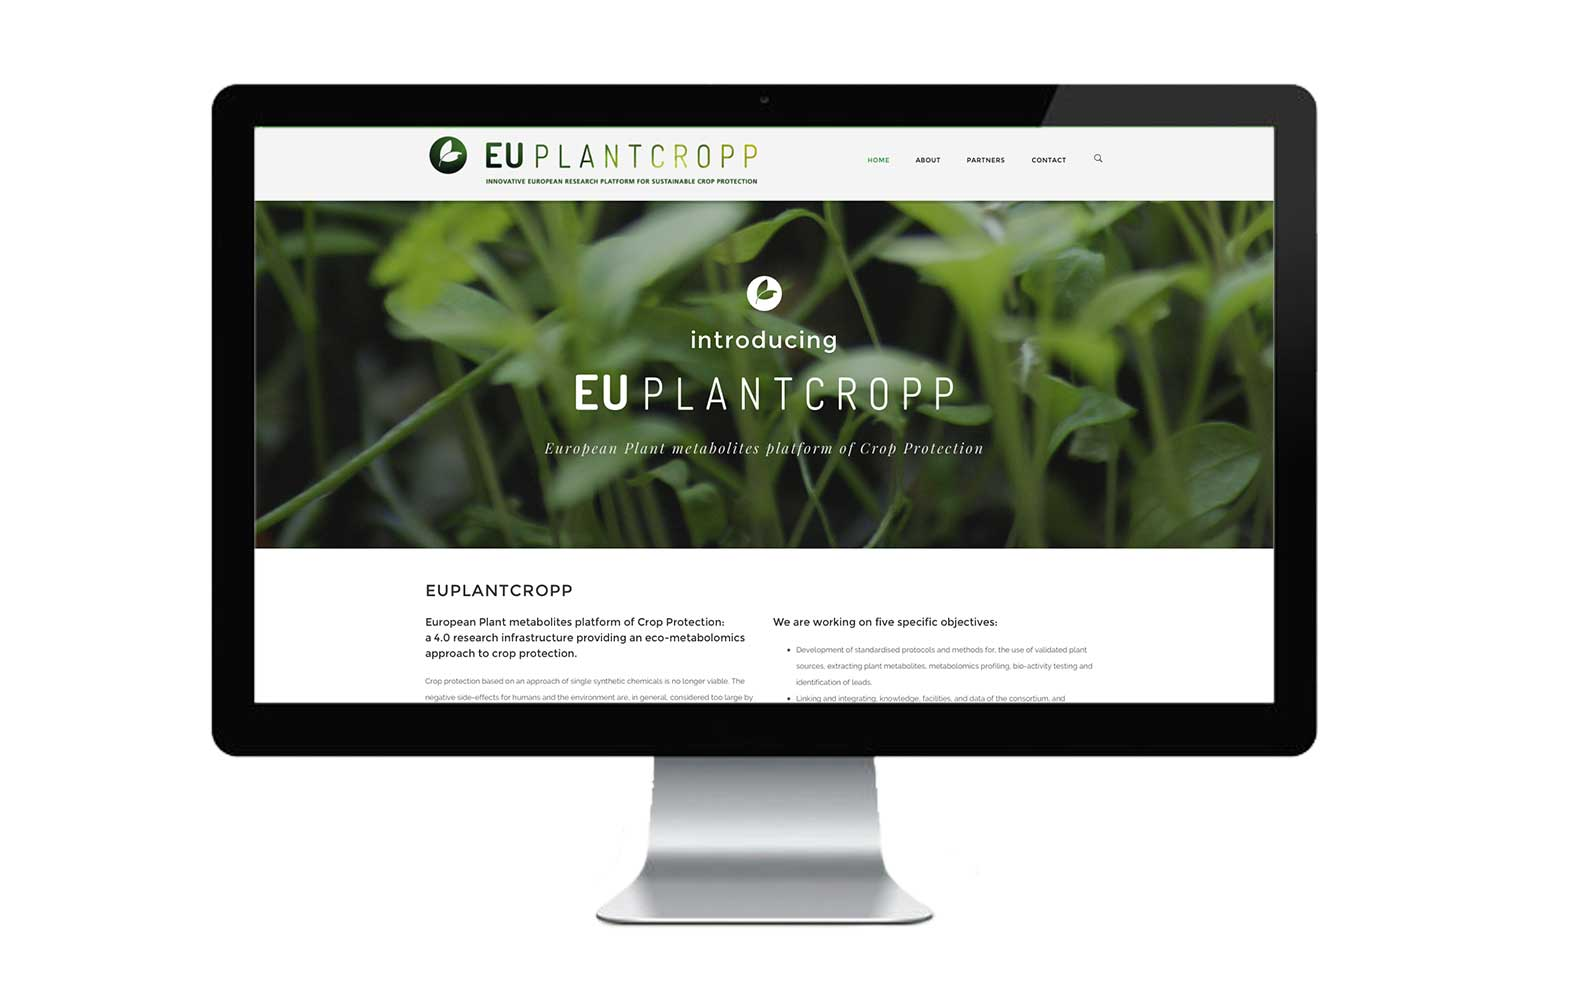 EUplantcropp-website-Studio-Ernst1